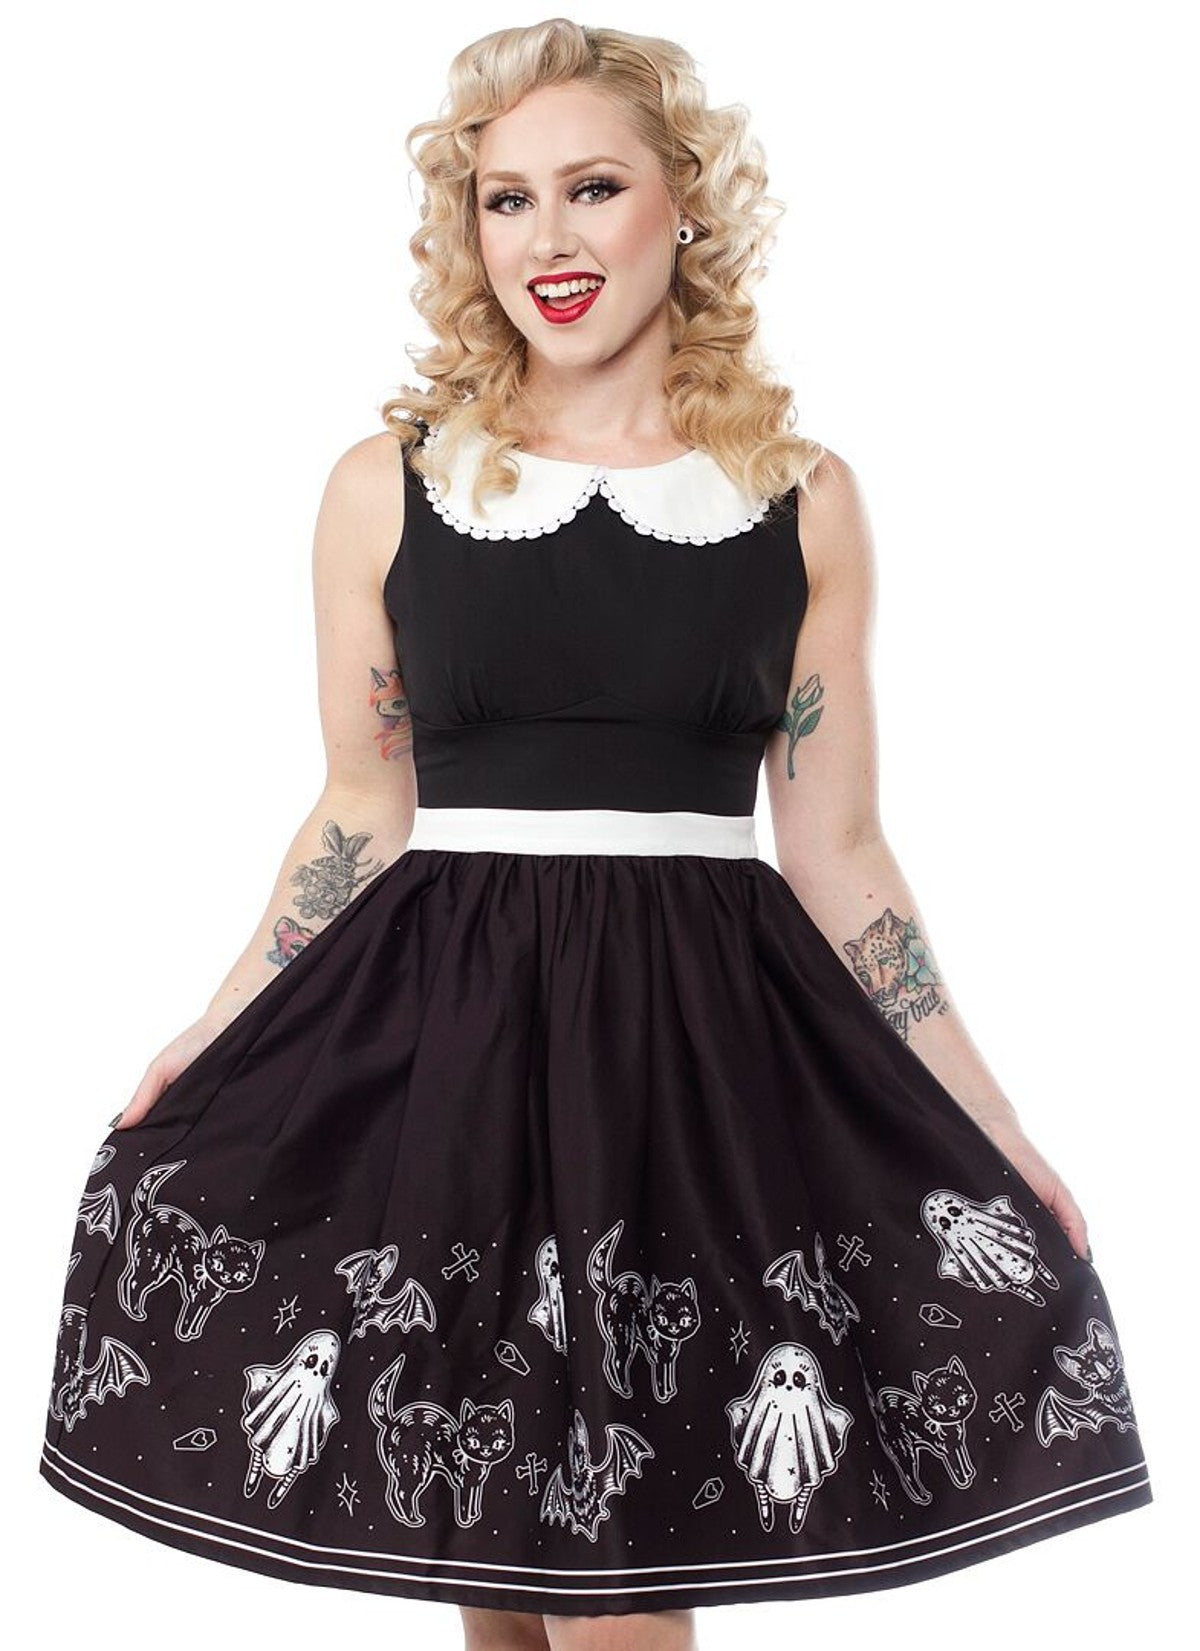 So Cute It's Spooky black White Shift Dress ghost Cats Bats pockets Junior's - Cool Hot Fashions